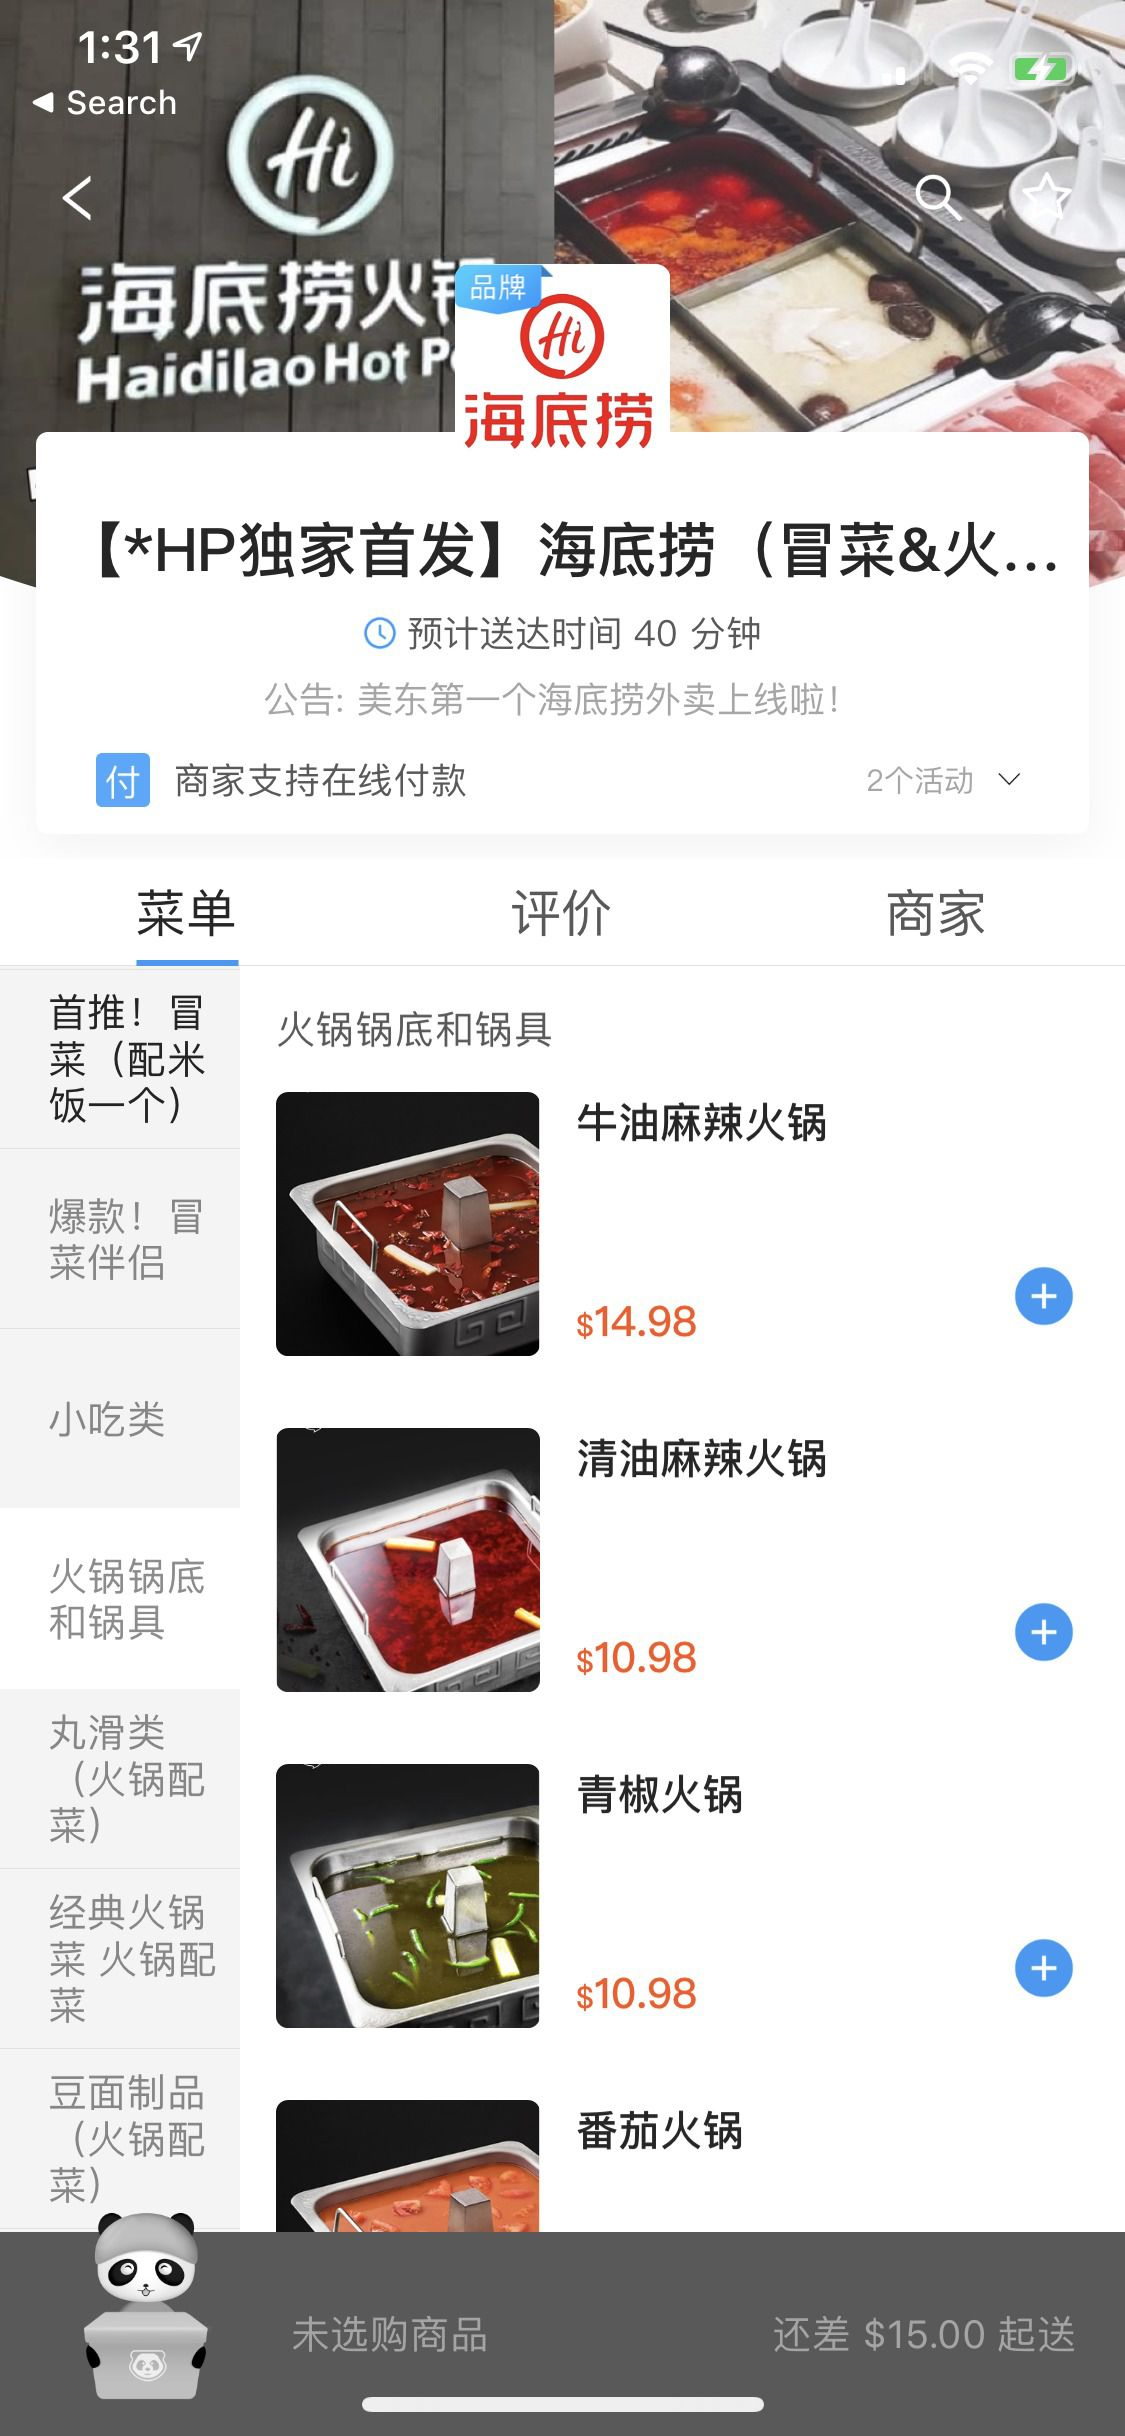 A screenshot of a mobile phone's Haidilao ordering system in Chinese.